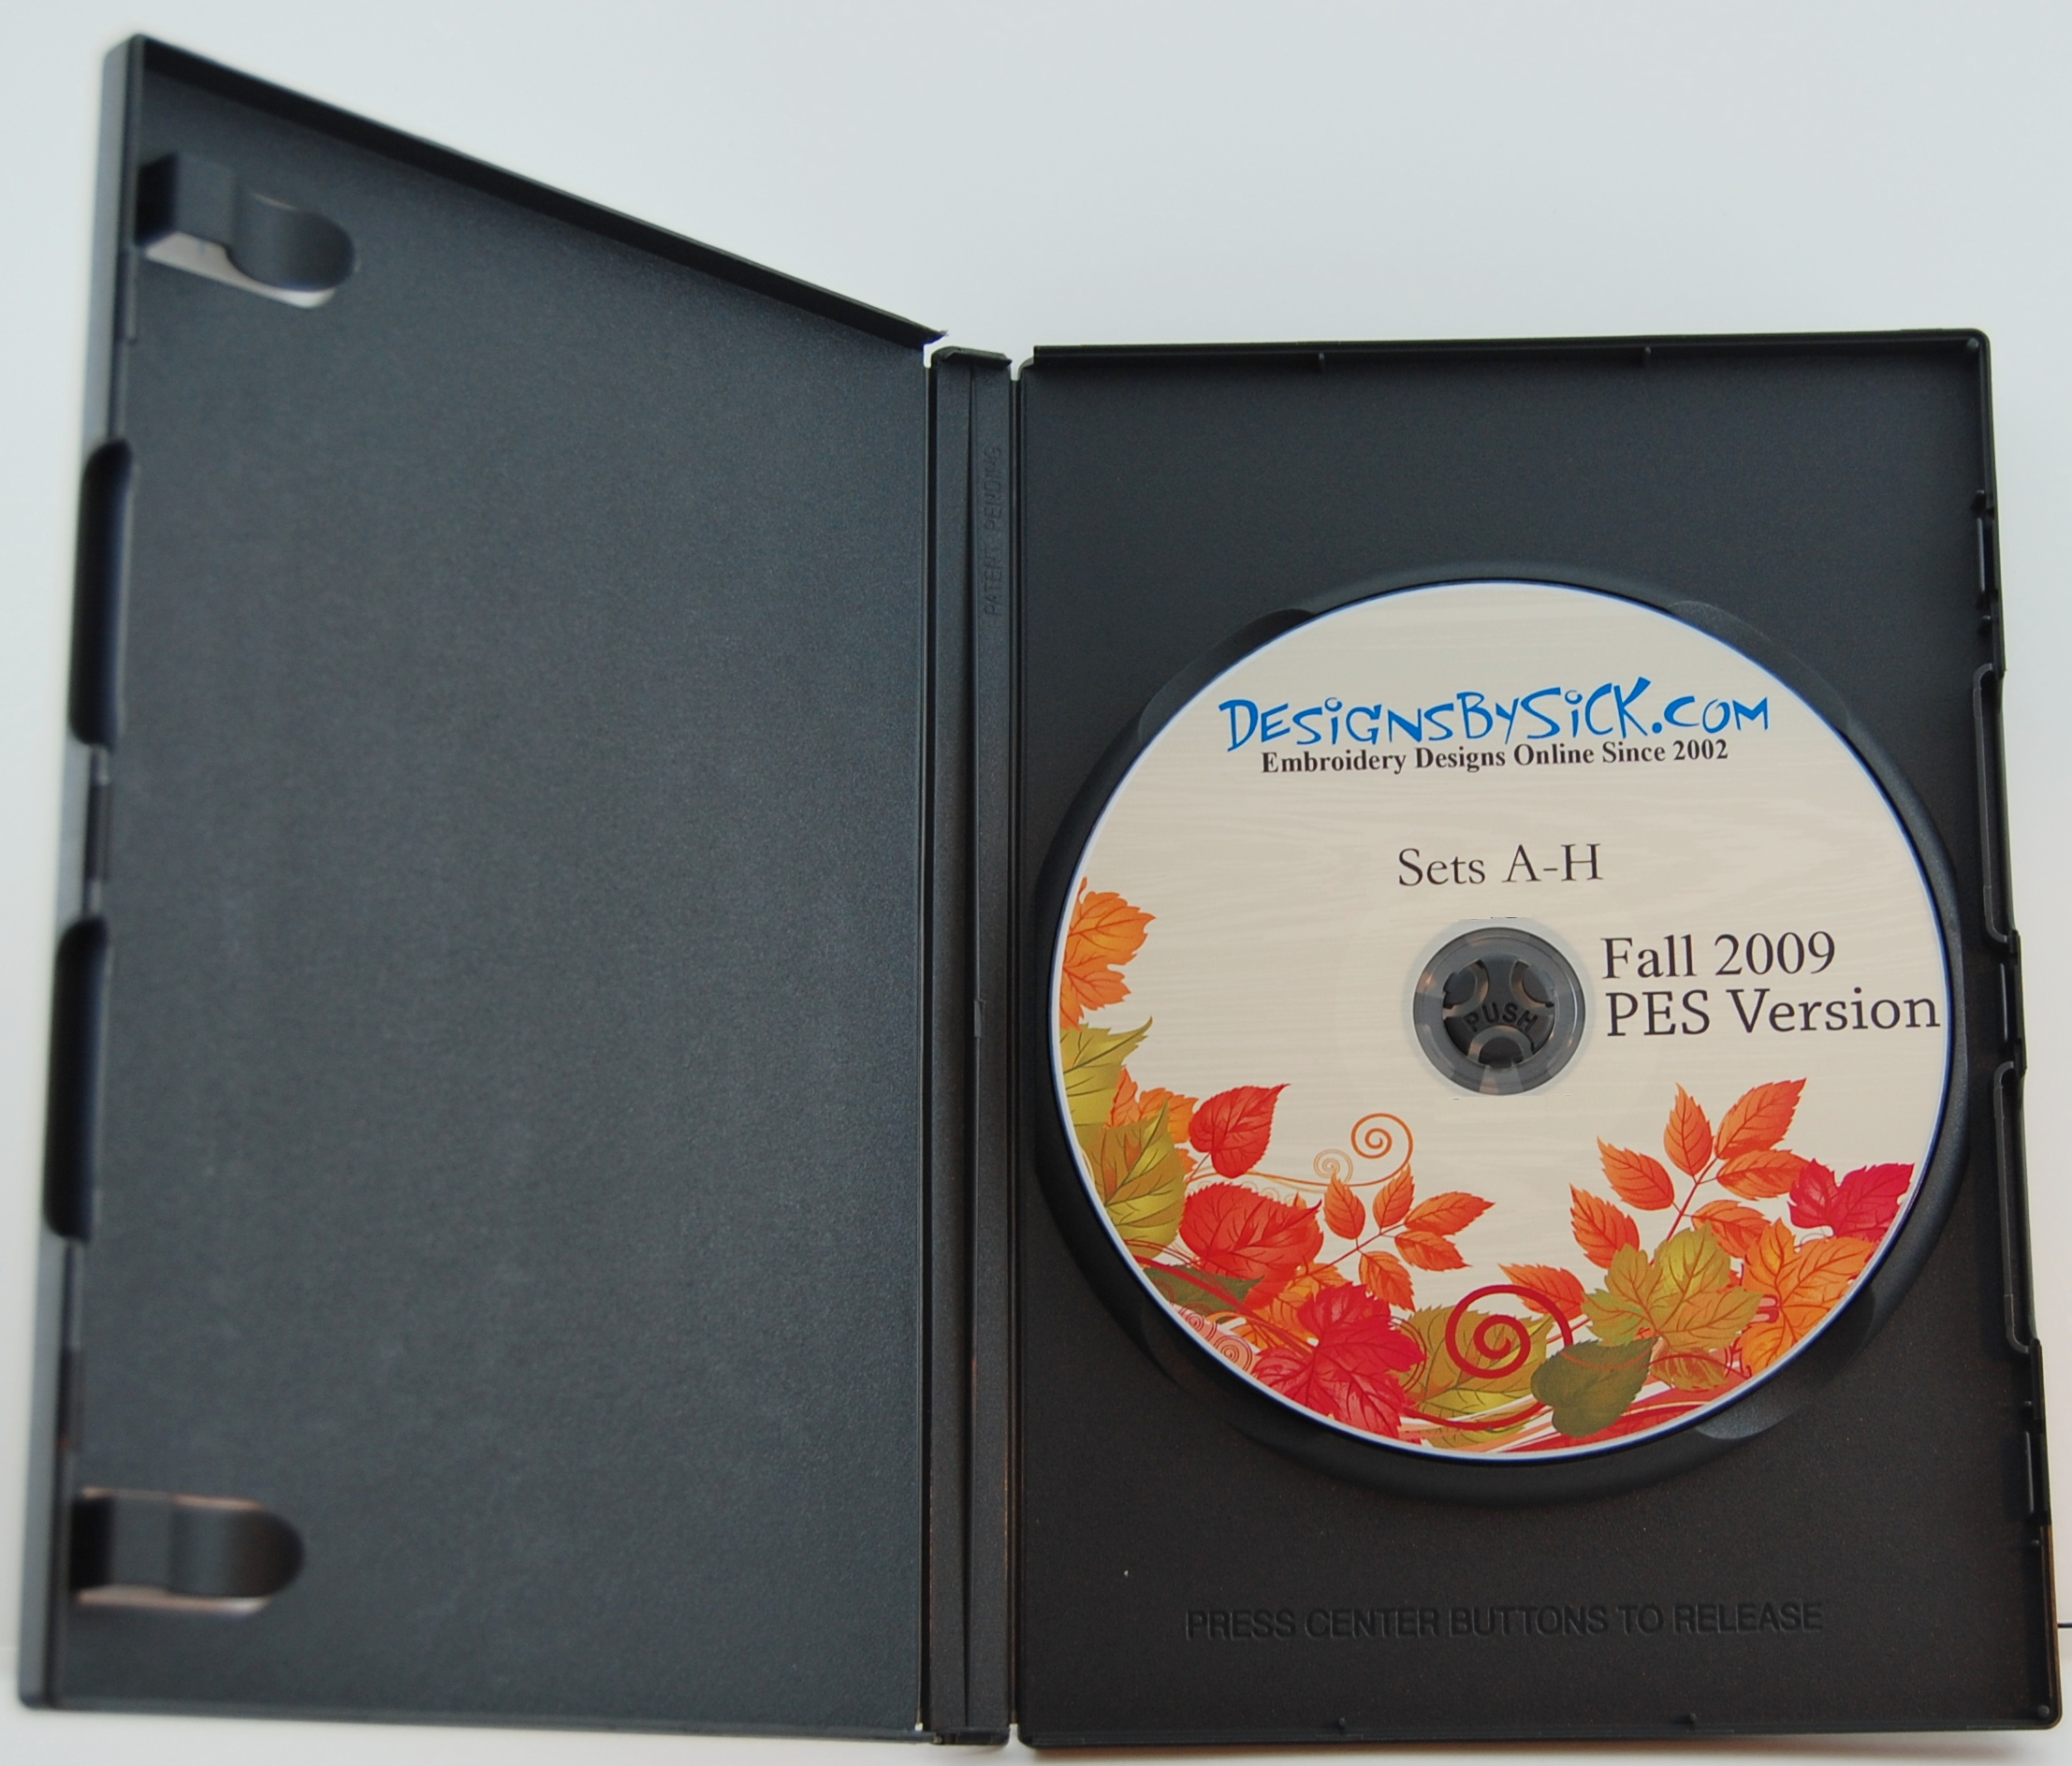 Inside DVD case with no insert card